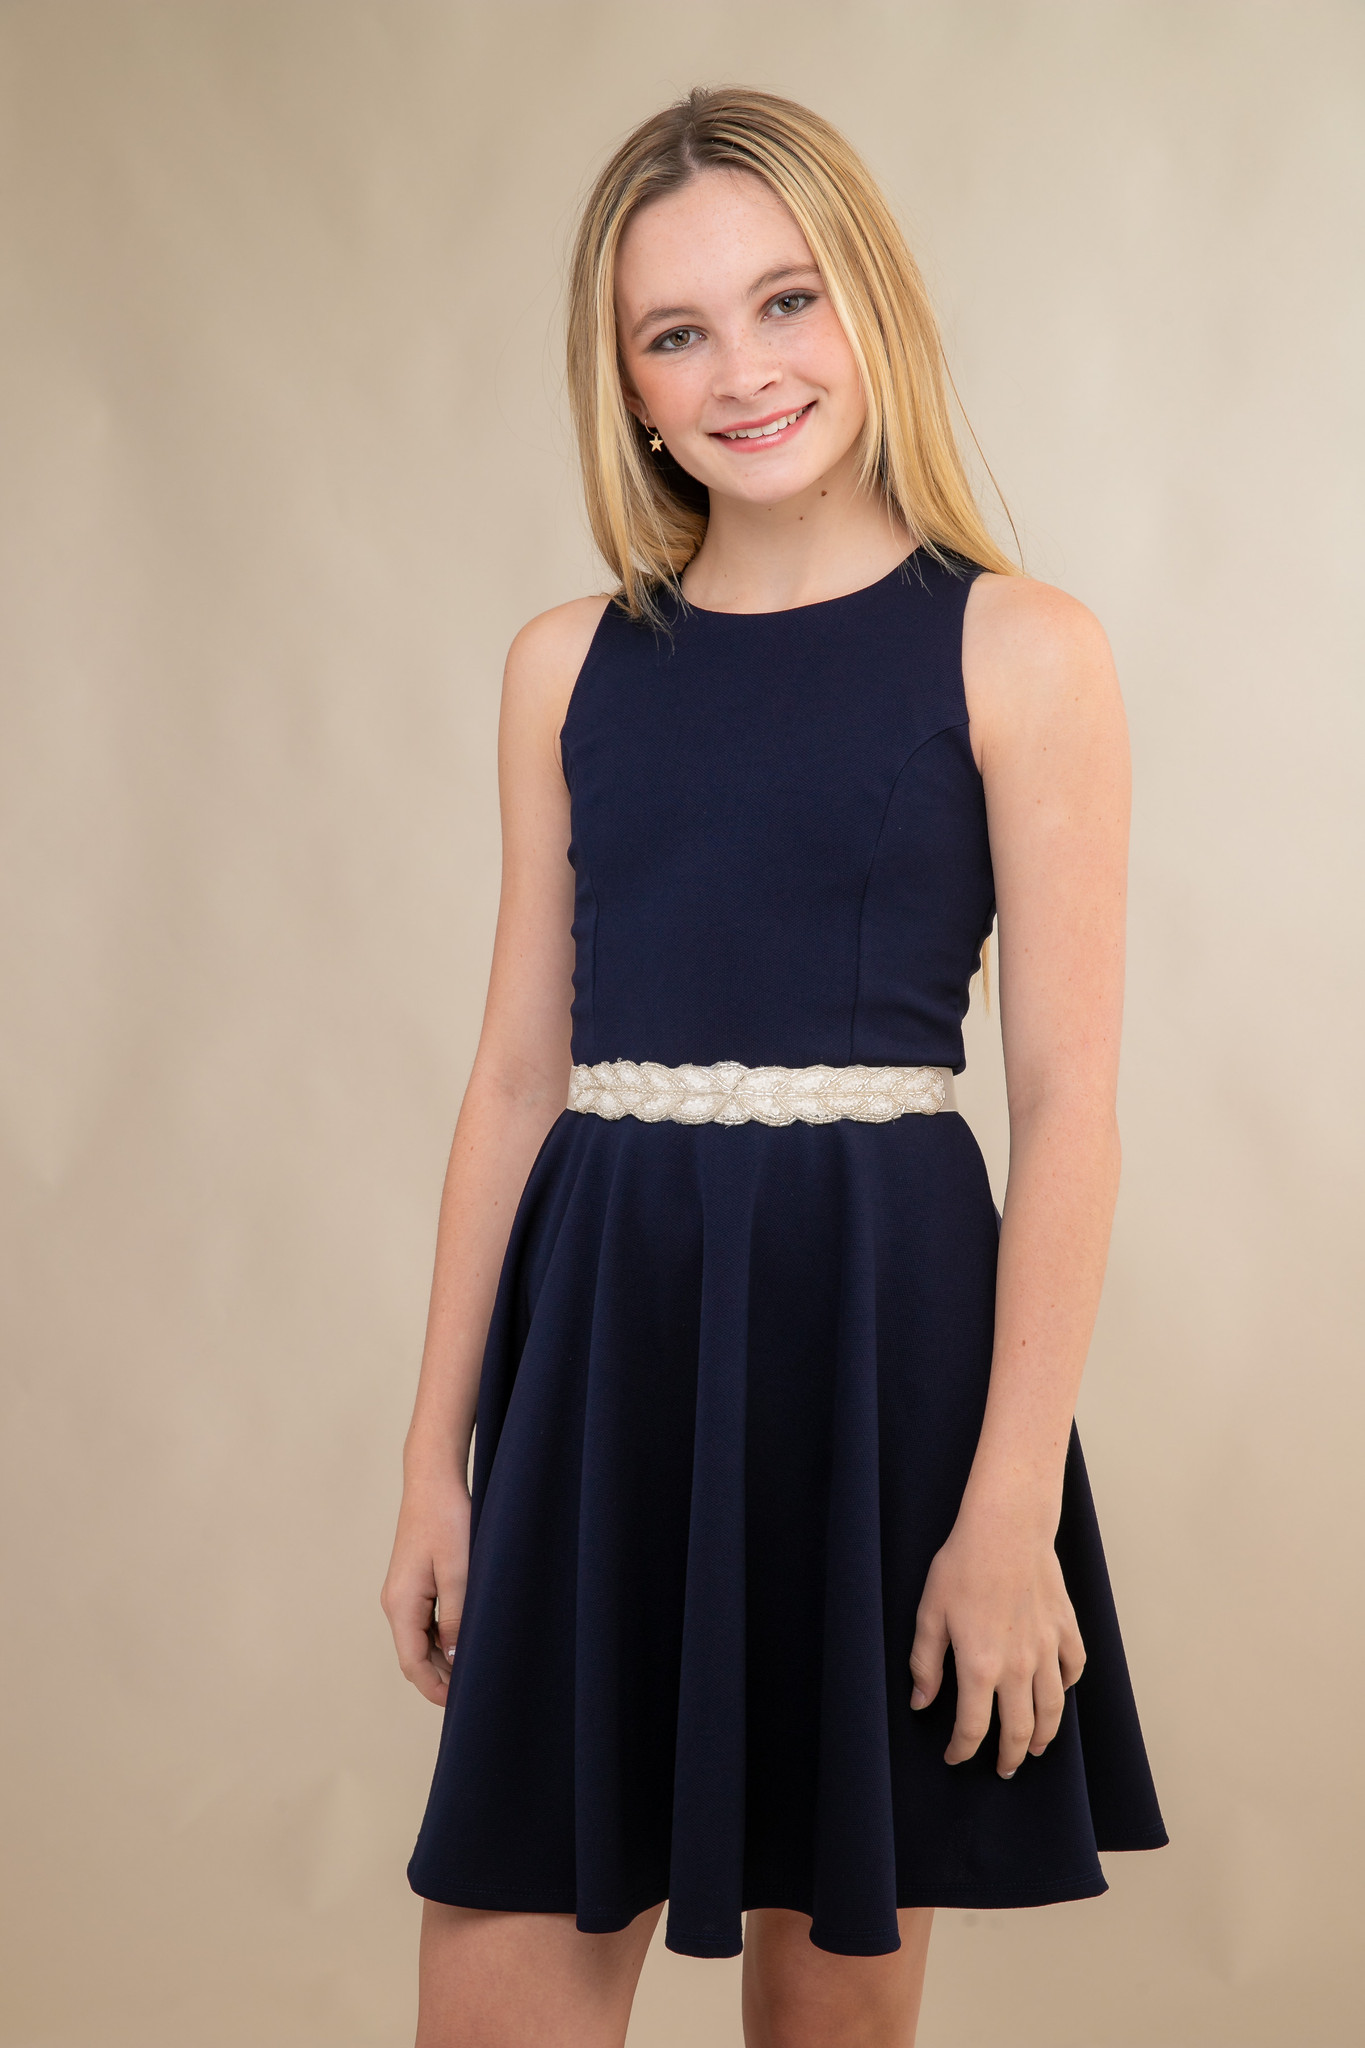 Navy Texture Racer Back Dress in Longer Length with belt.